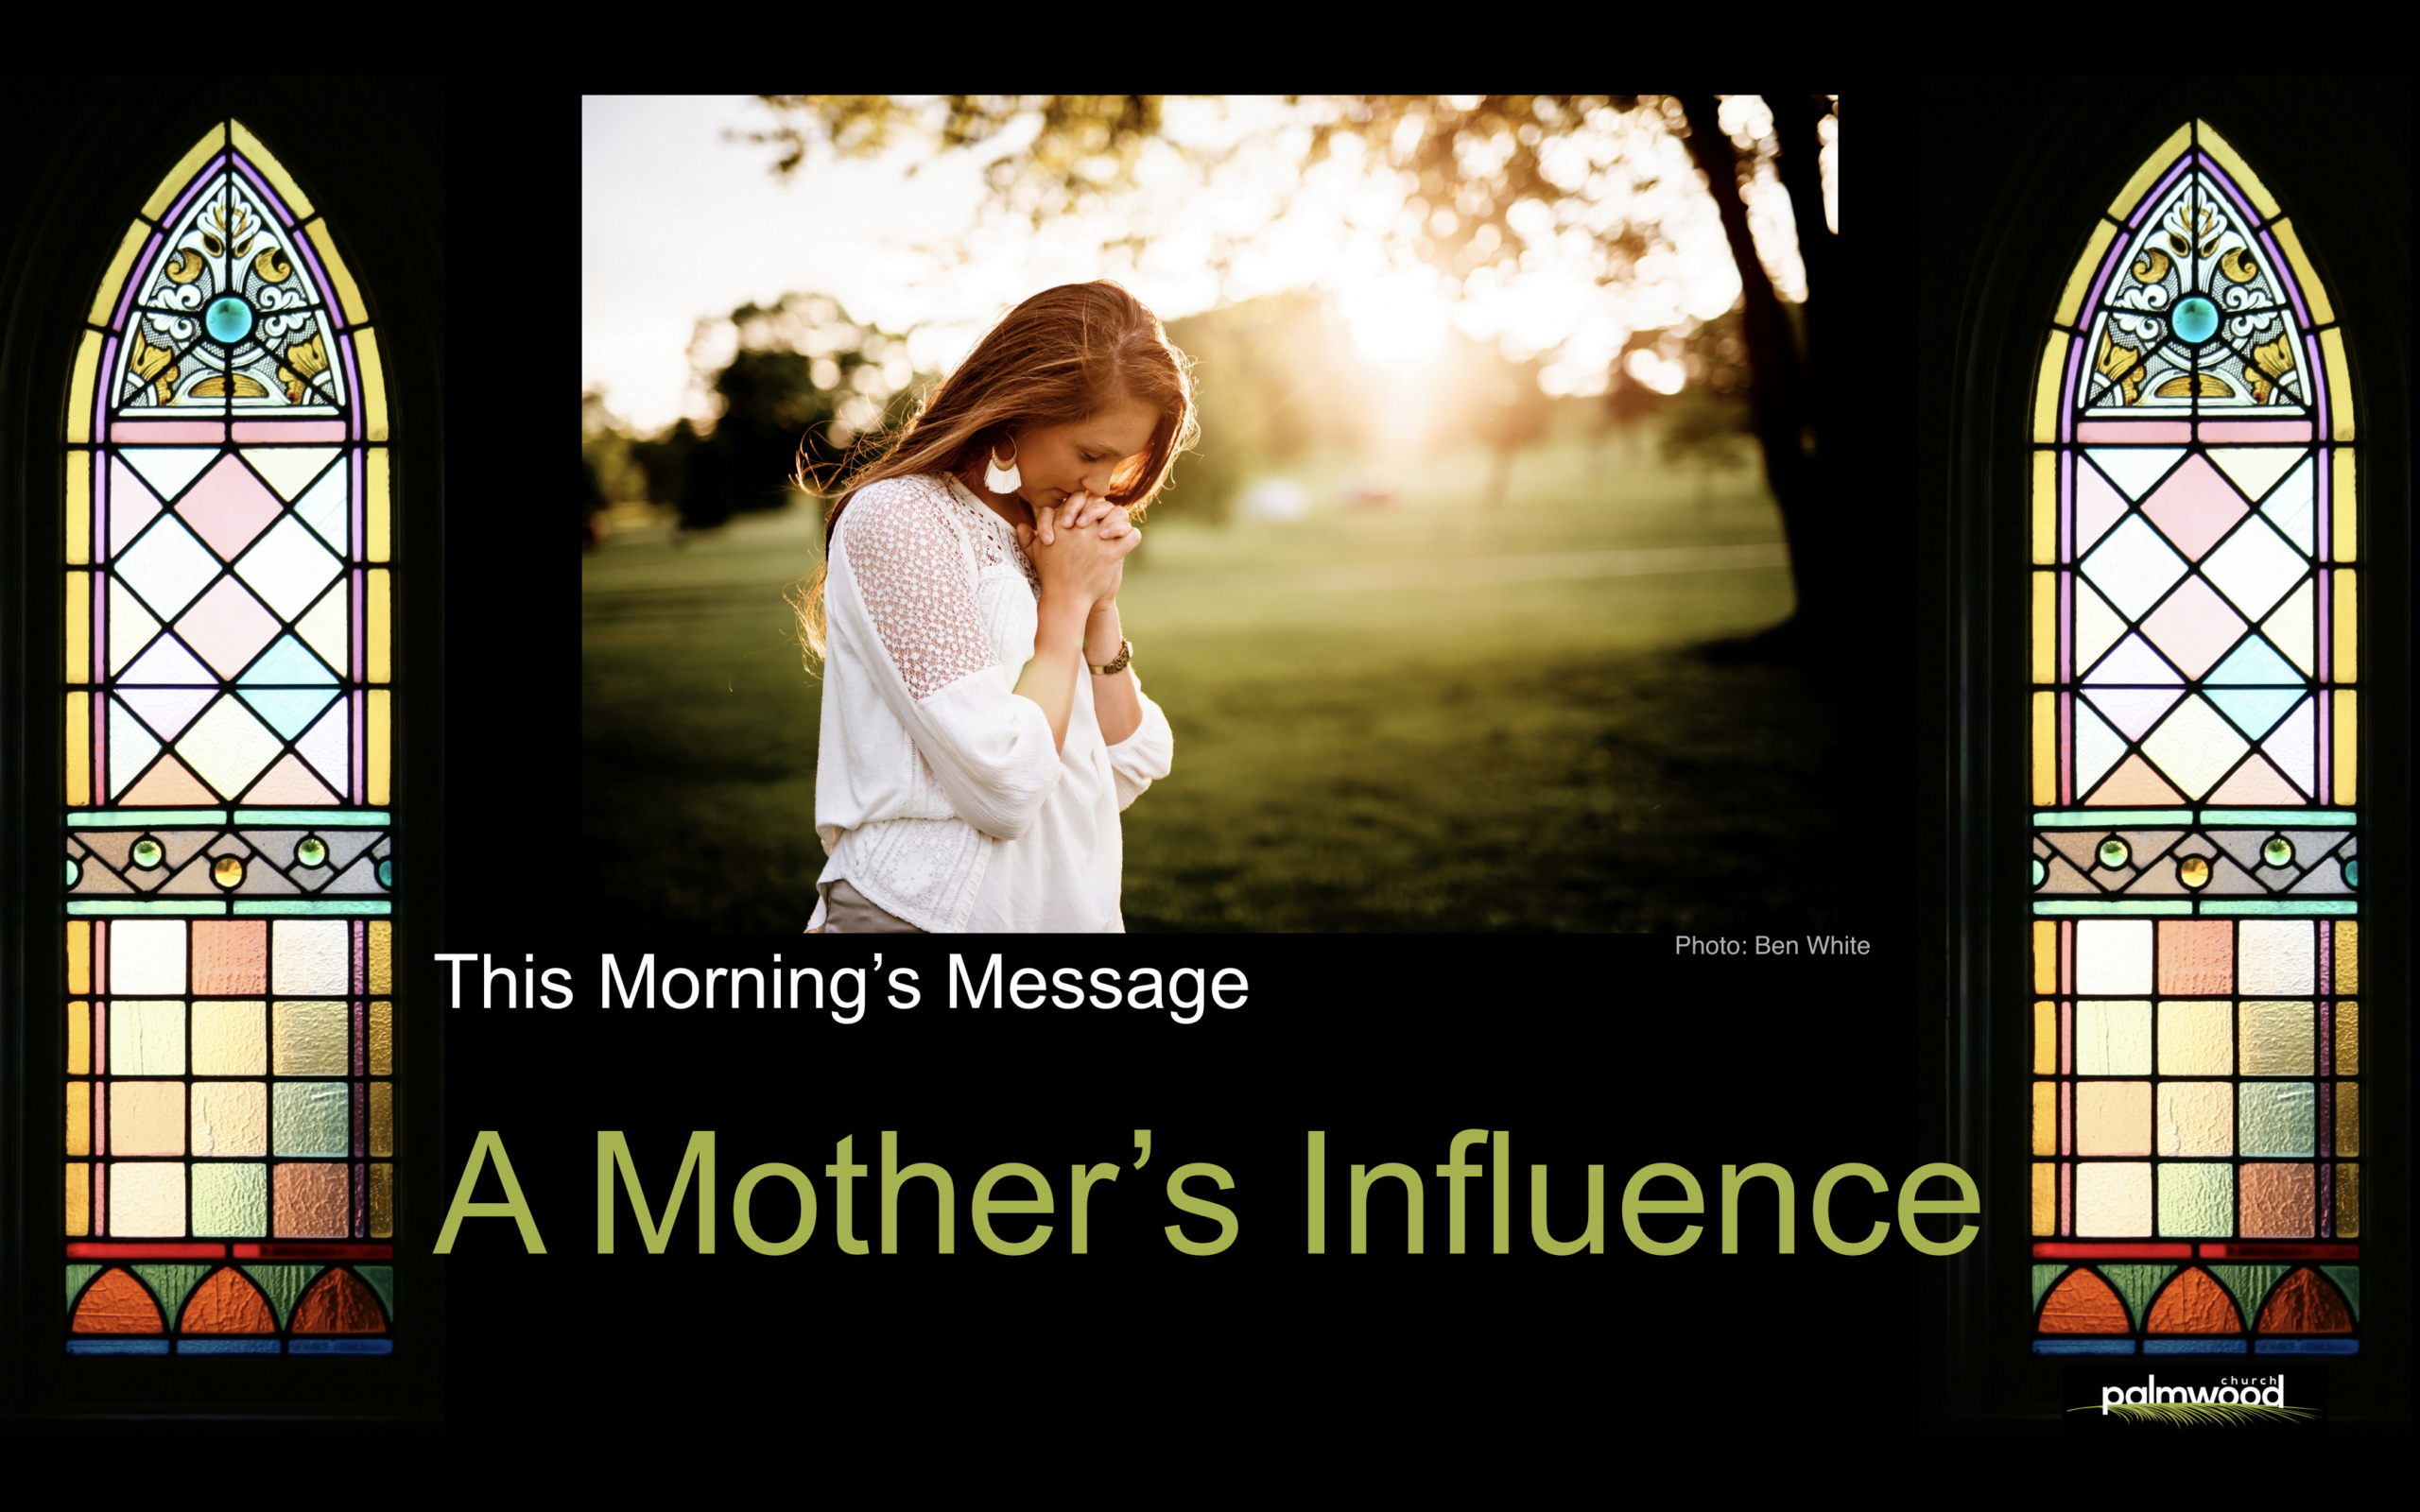 A Mother's Influence